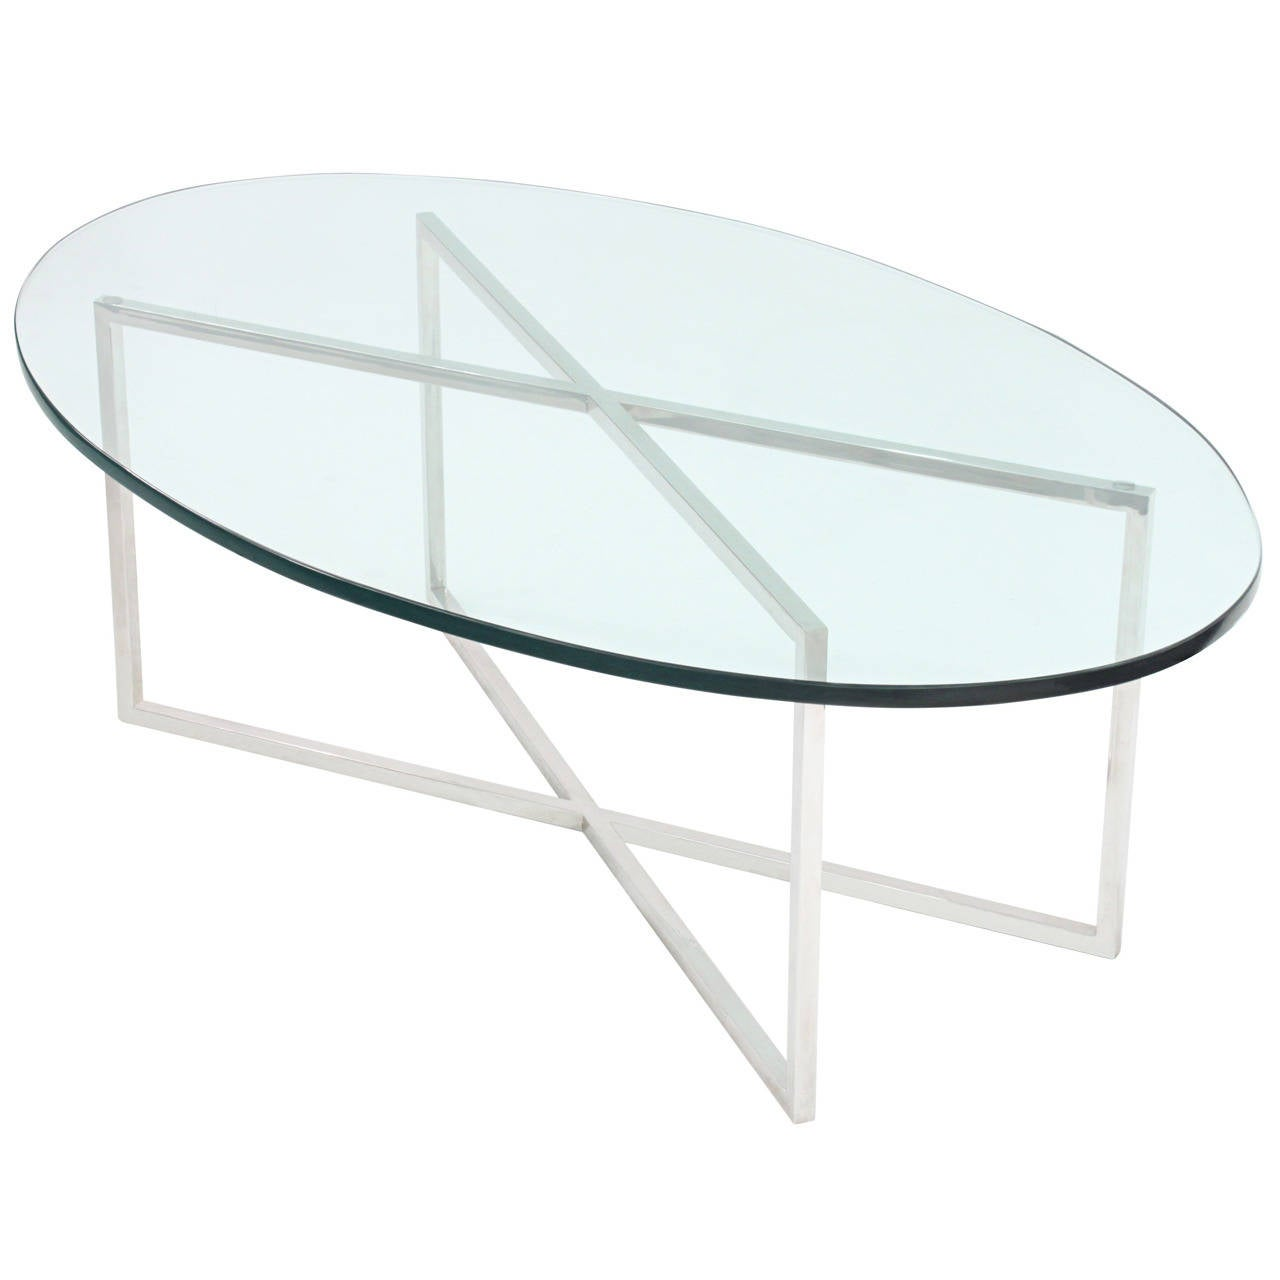 Elegant Coffee Table With Polished Steel Base By Tommi Parzinger For Sale At 1stdibs